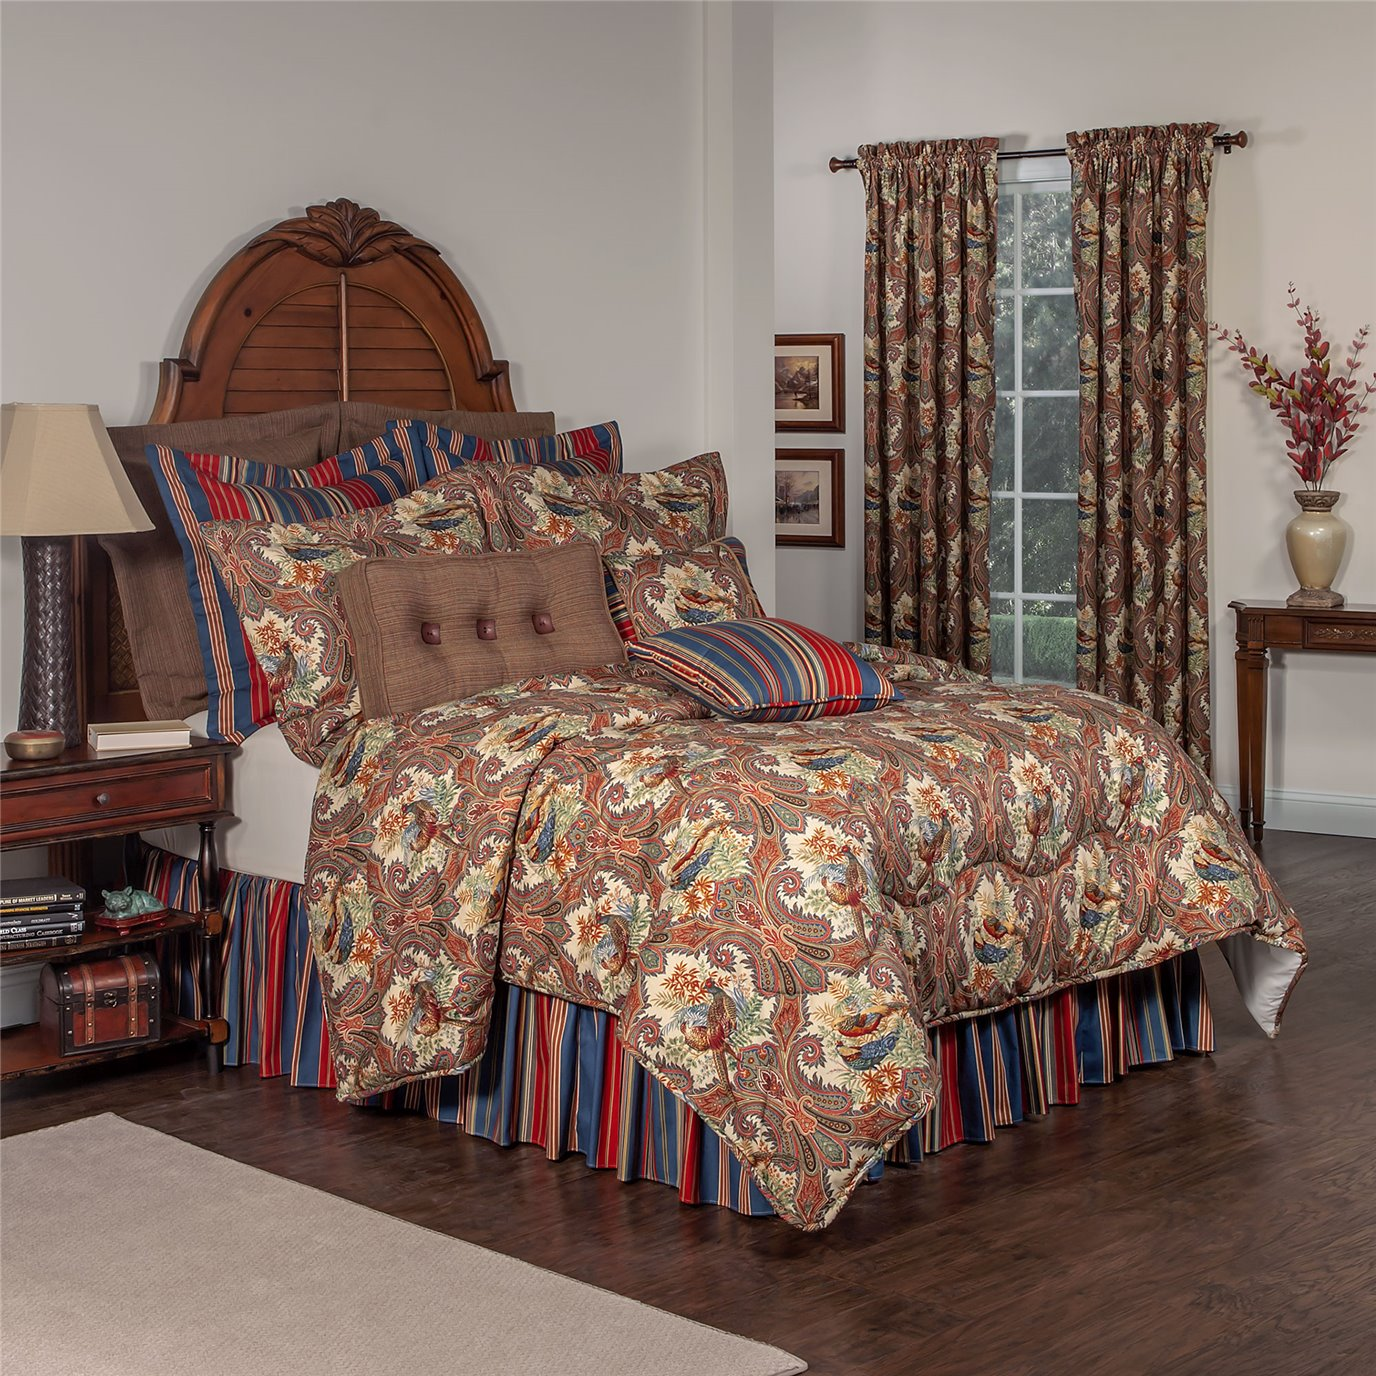 "Royal Pheasant California King Comforter Set (18"" Bedskirt)"